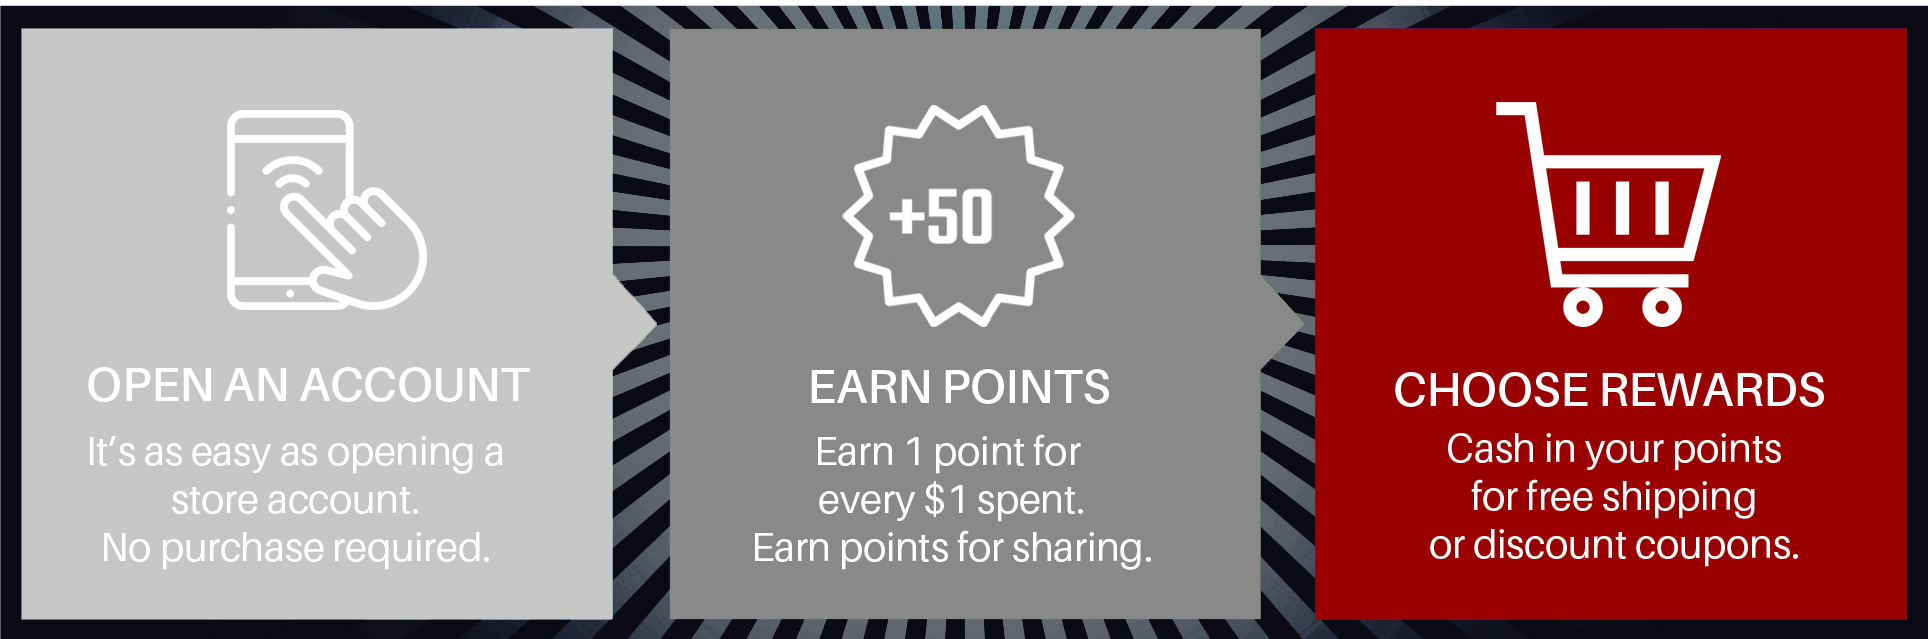 Join the Karambit.com loyalty and rewards program to earn deep discounts